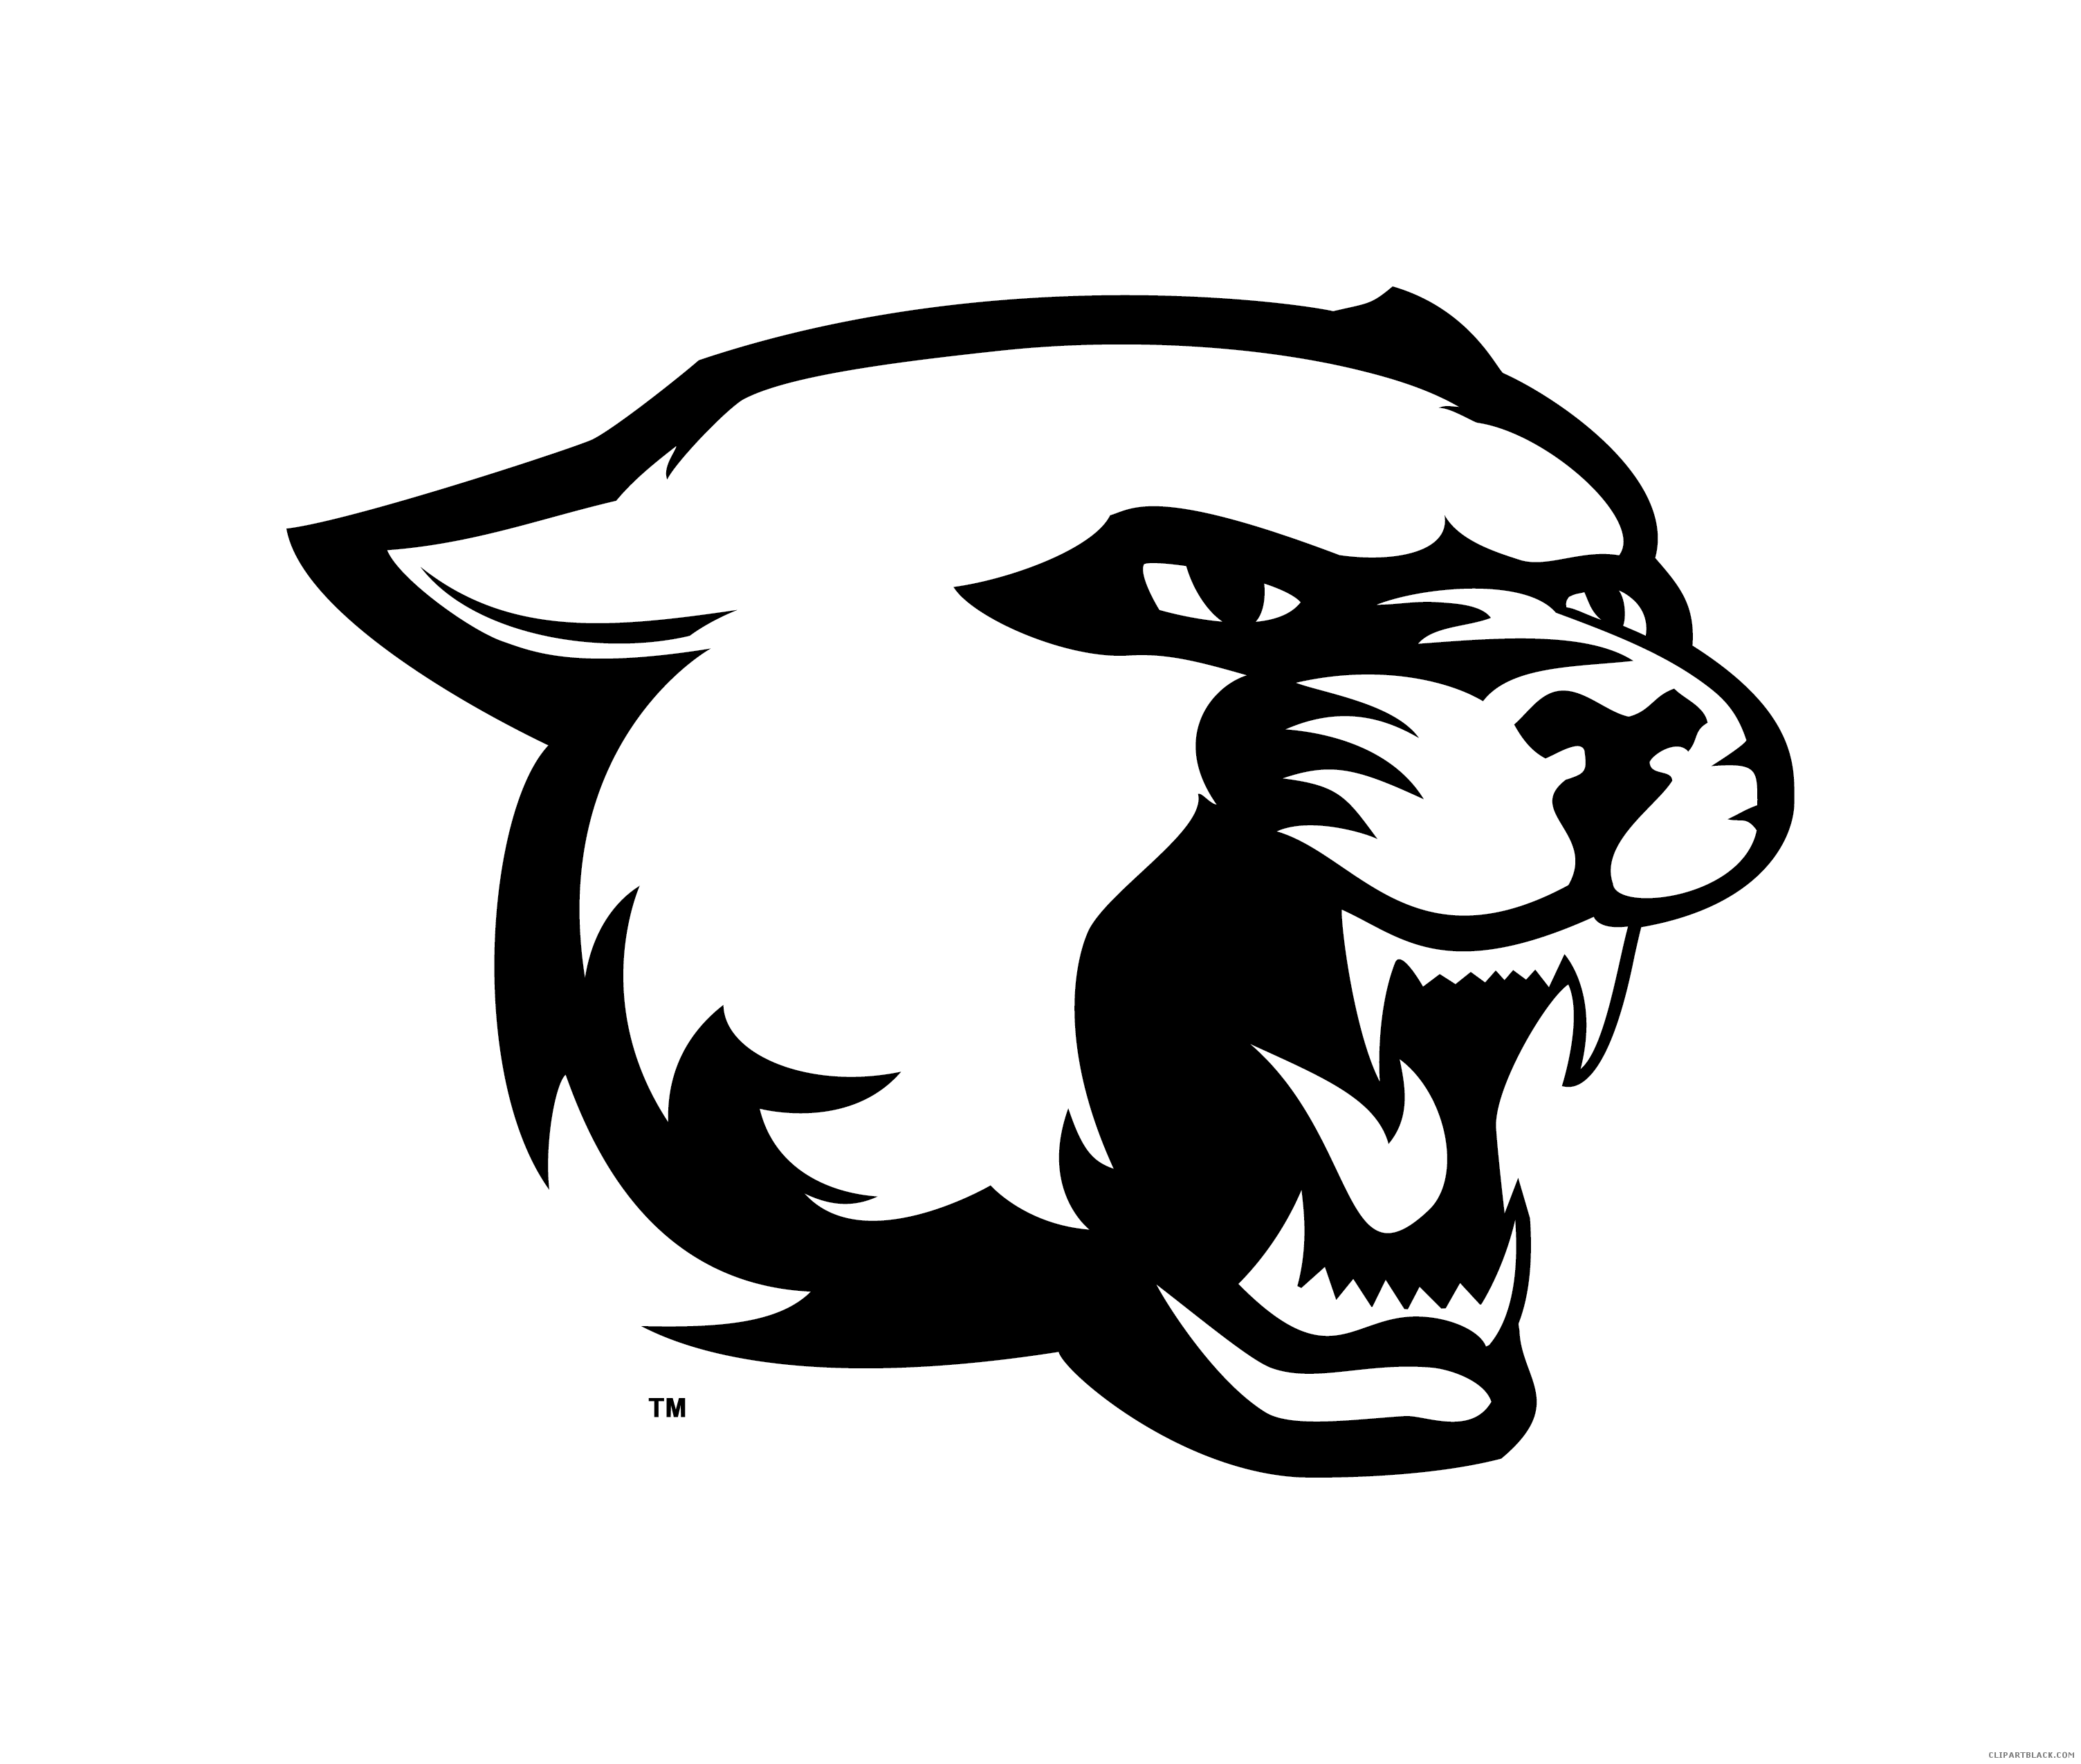 Panther face png. Clipart black and white